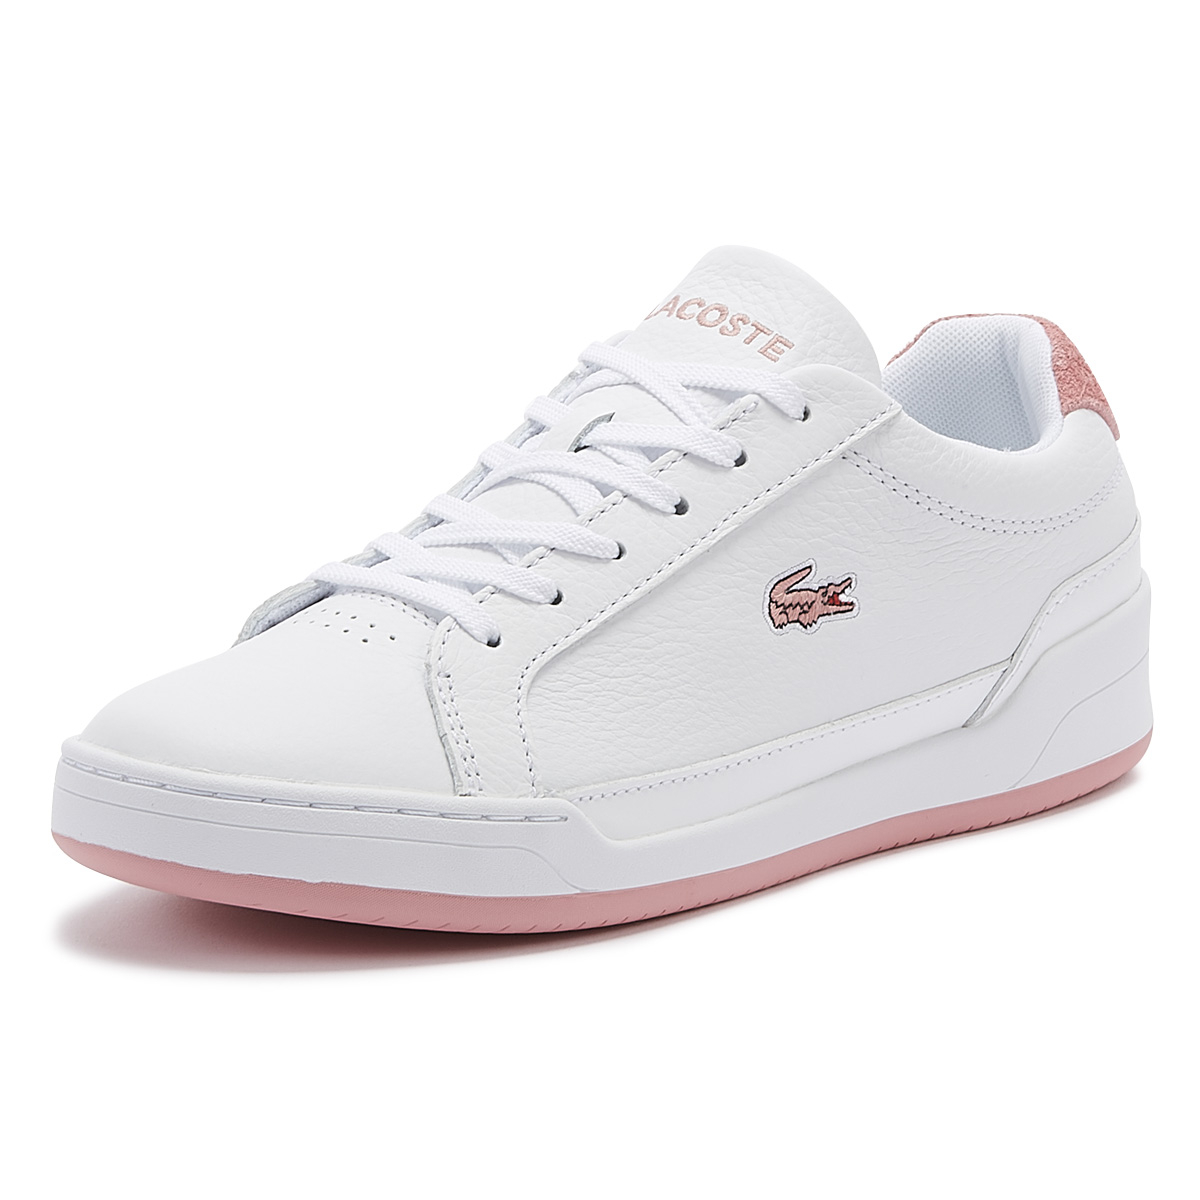 ladies lacoste trainers sale - 61% OFF